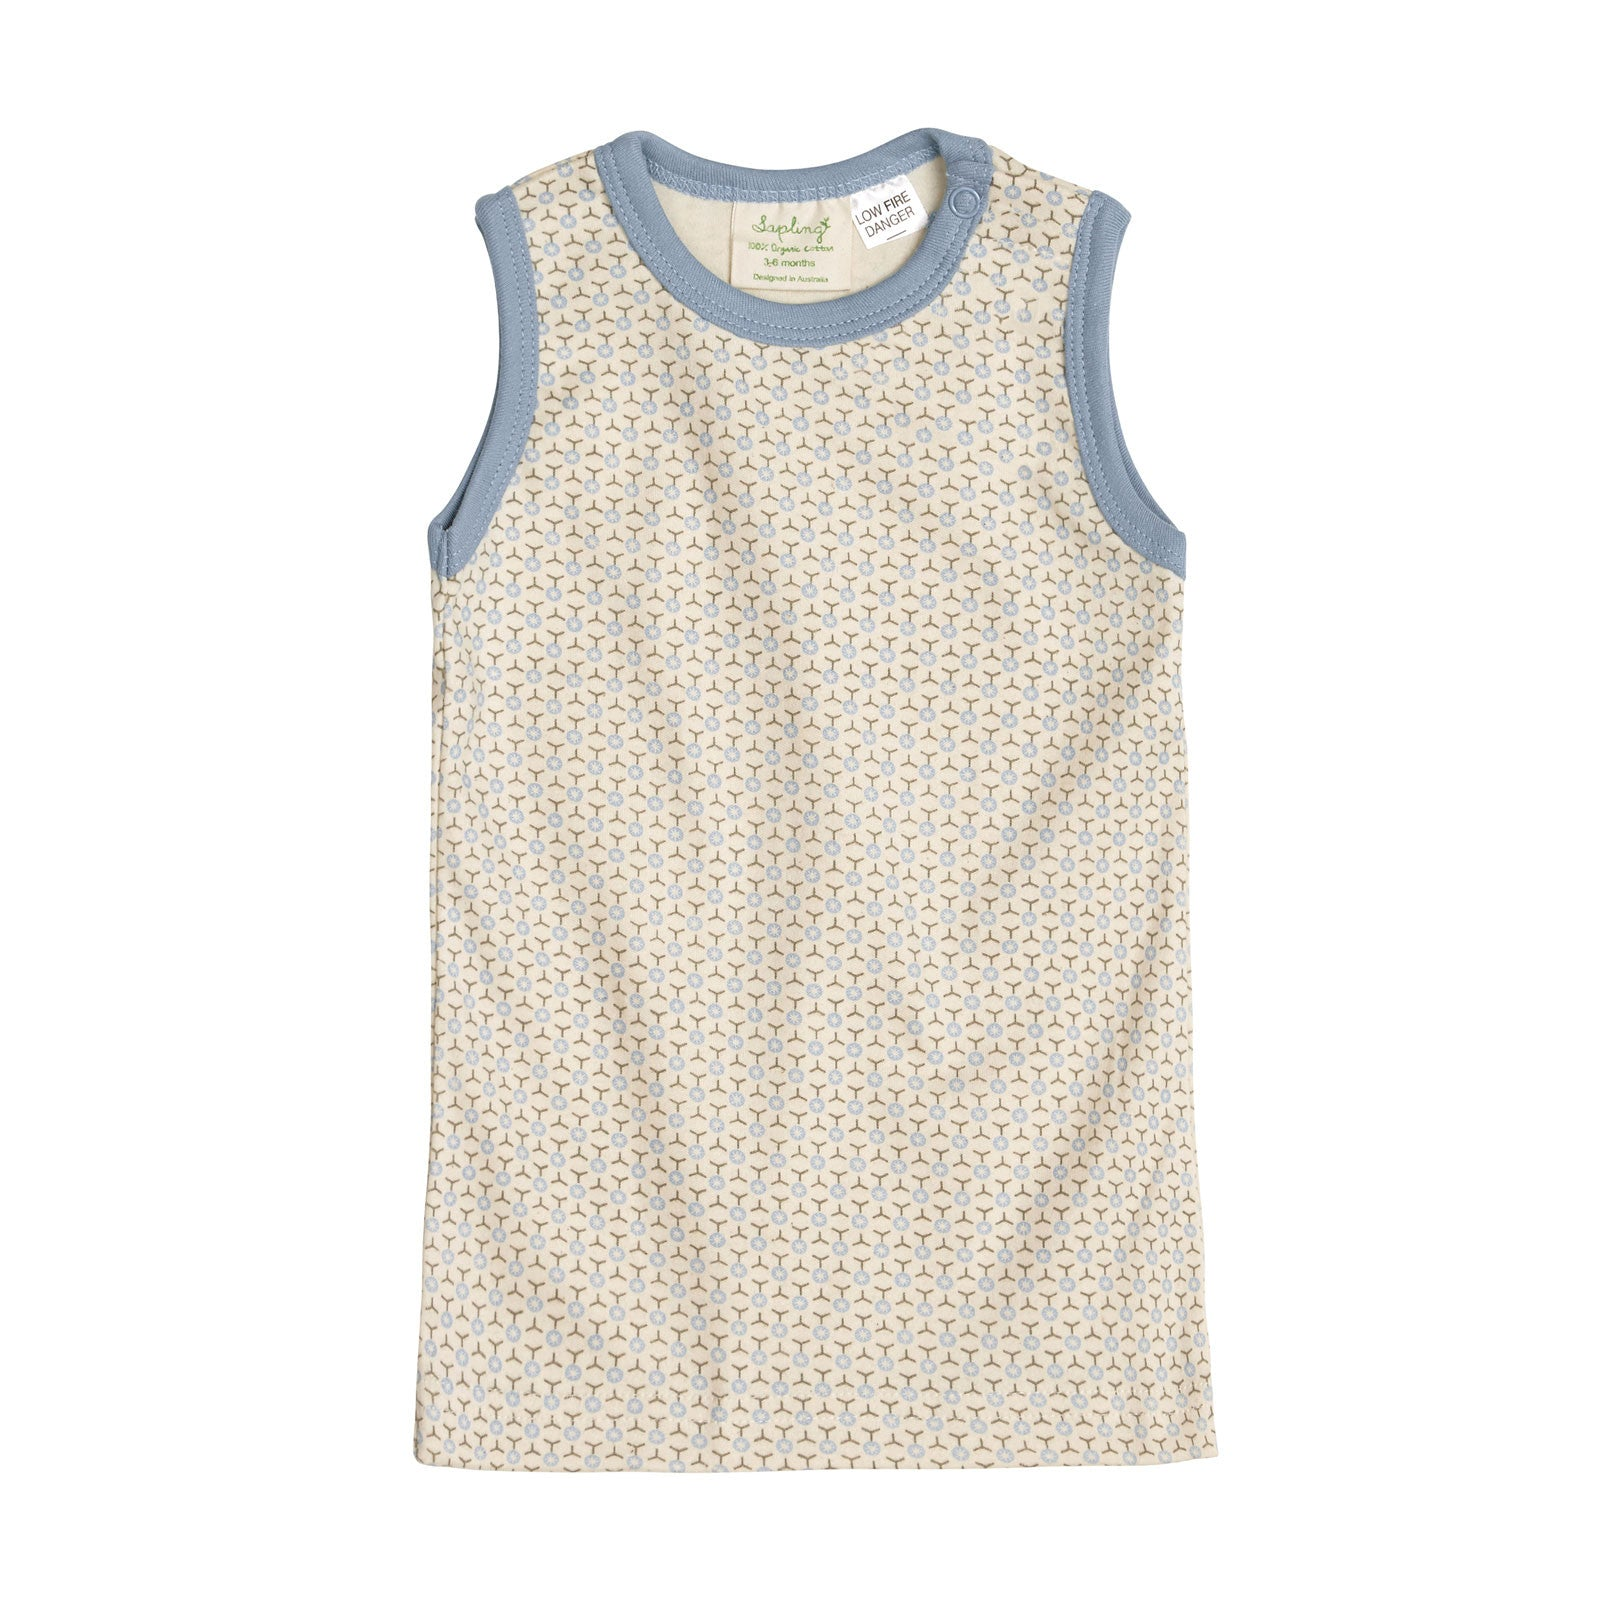 Sapling Child Essentials Tank Sapling Child Baby & Toddler Clothing 0-3M / Little Boy Blue at Little Earth Nest Eco Shop